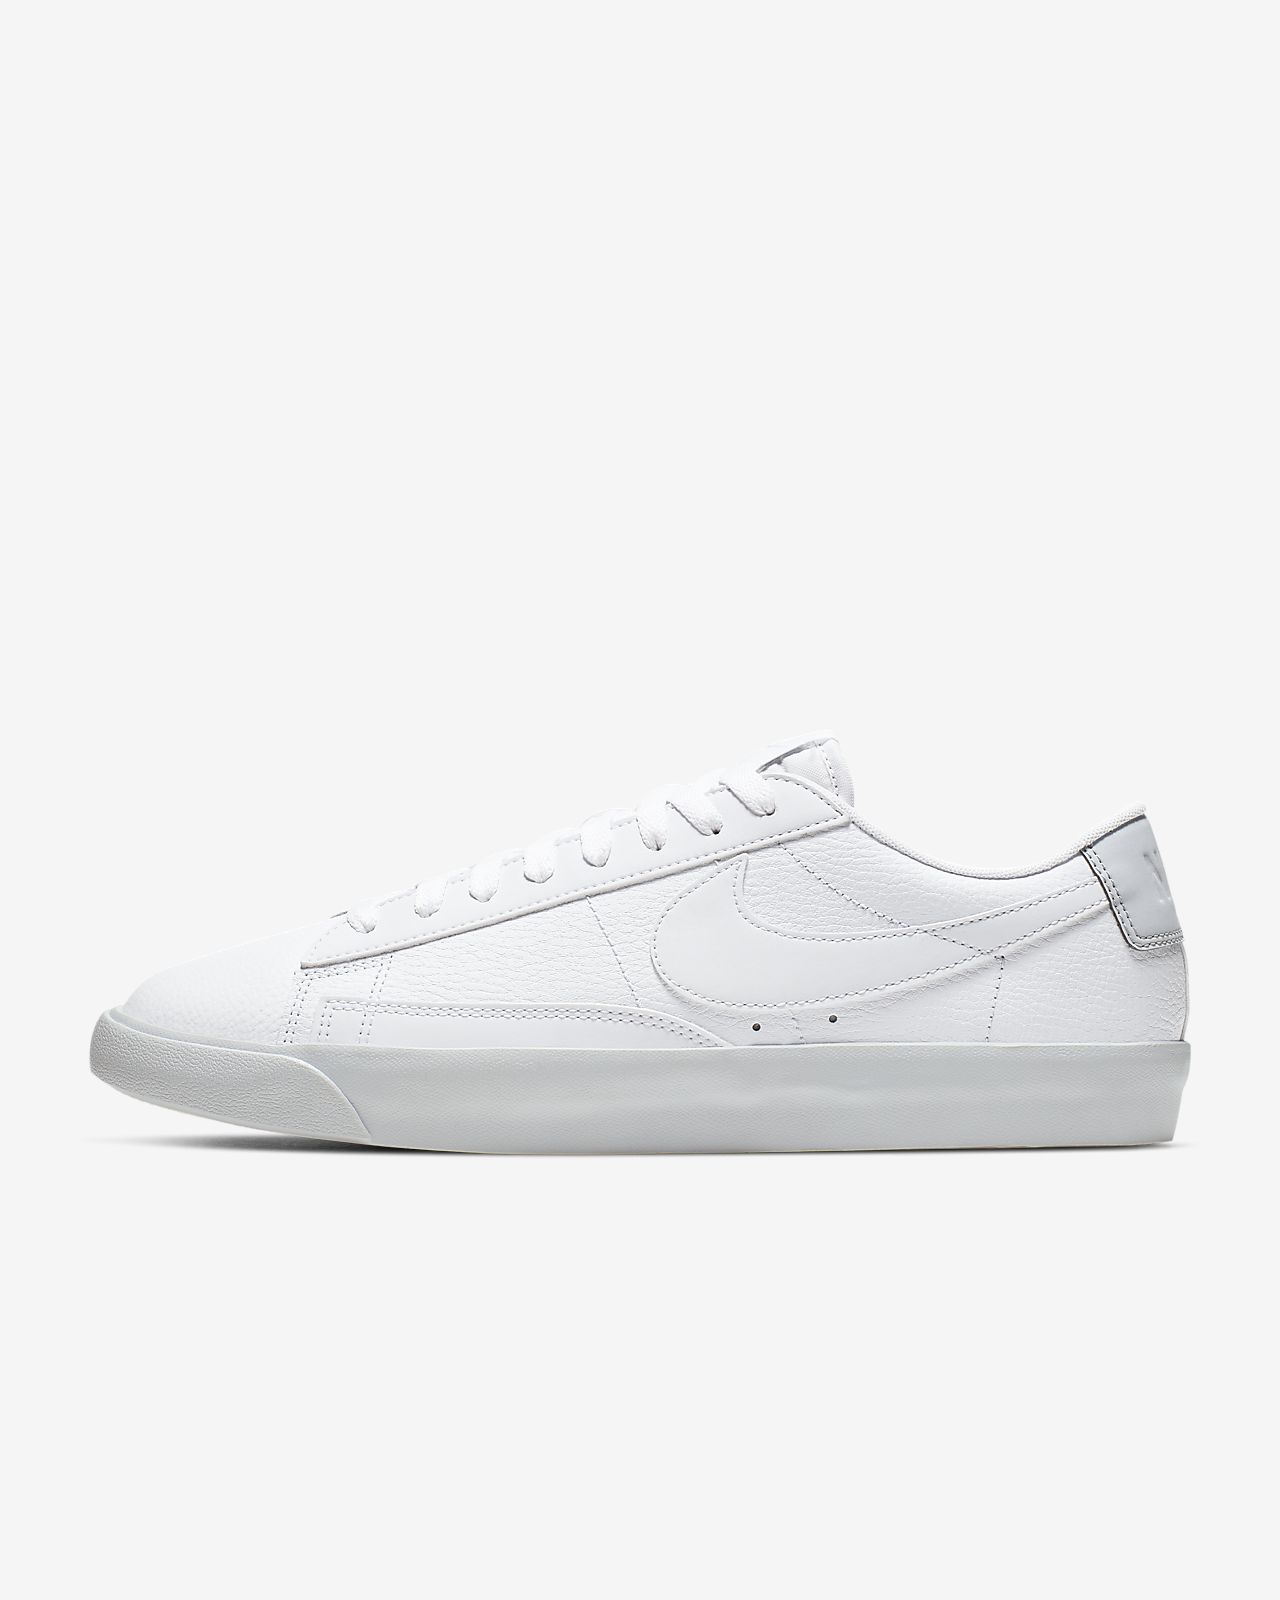 Nike Blazer Low LX Men's Shoe